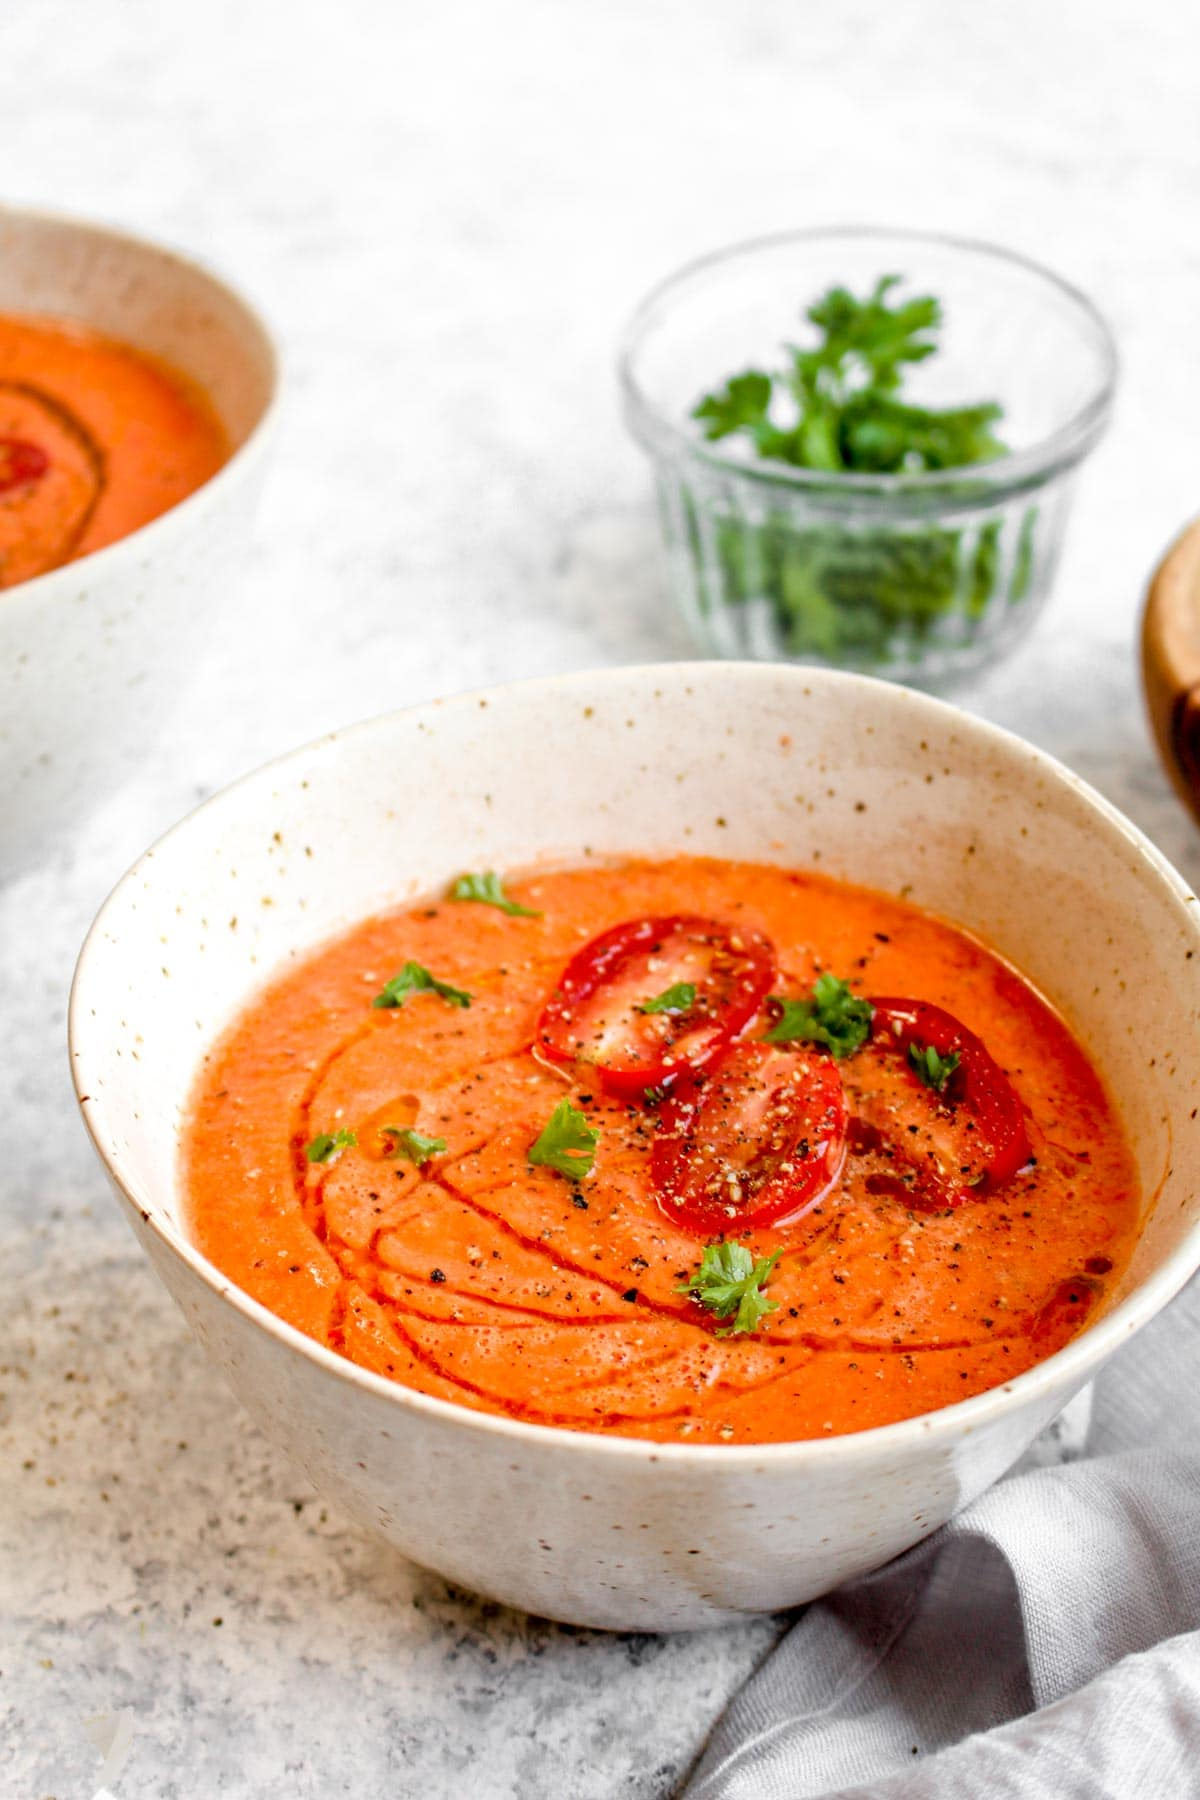 A bowl of blended foolproof gazpacho with tomatoes.